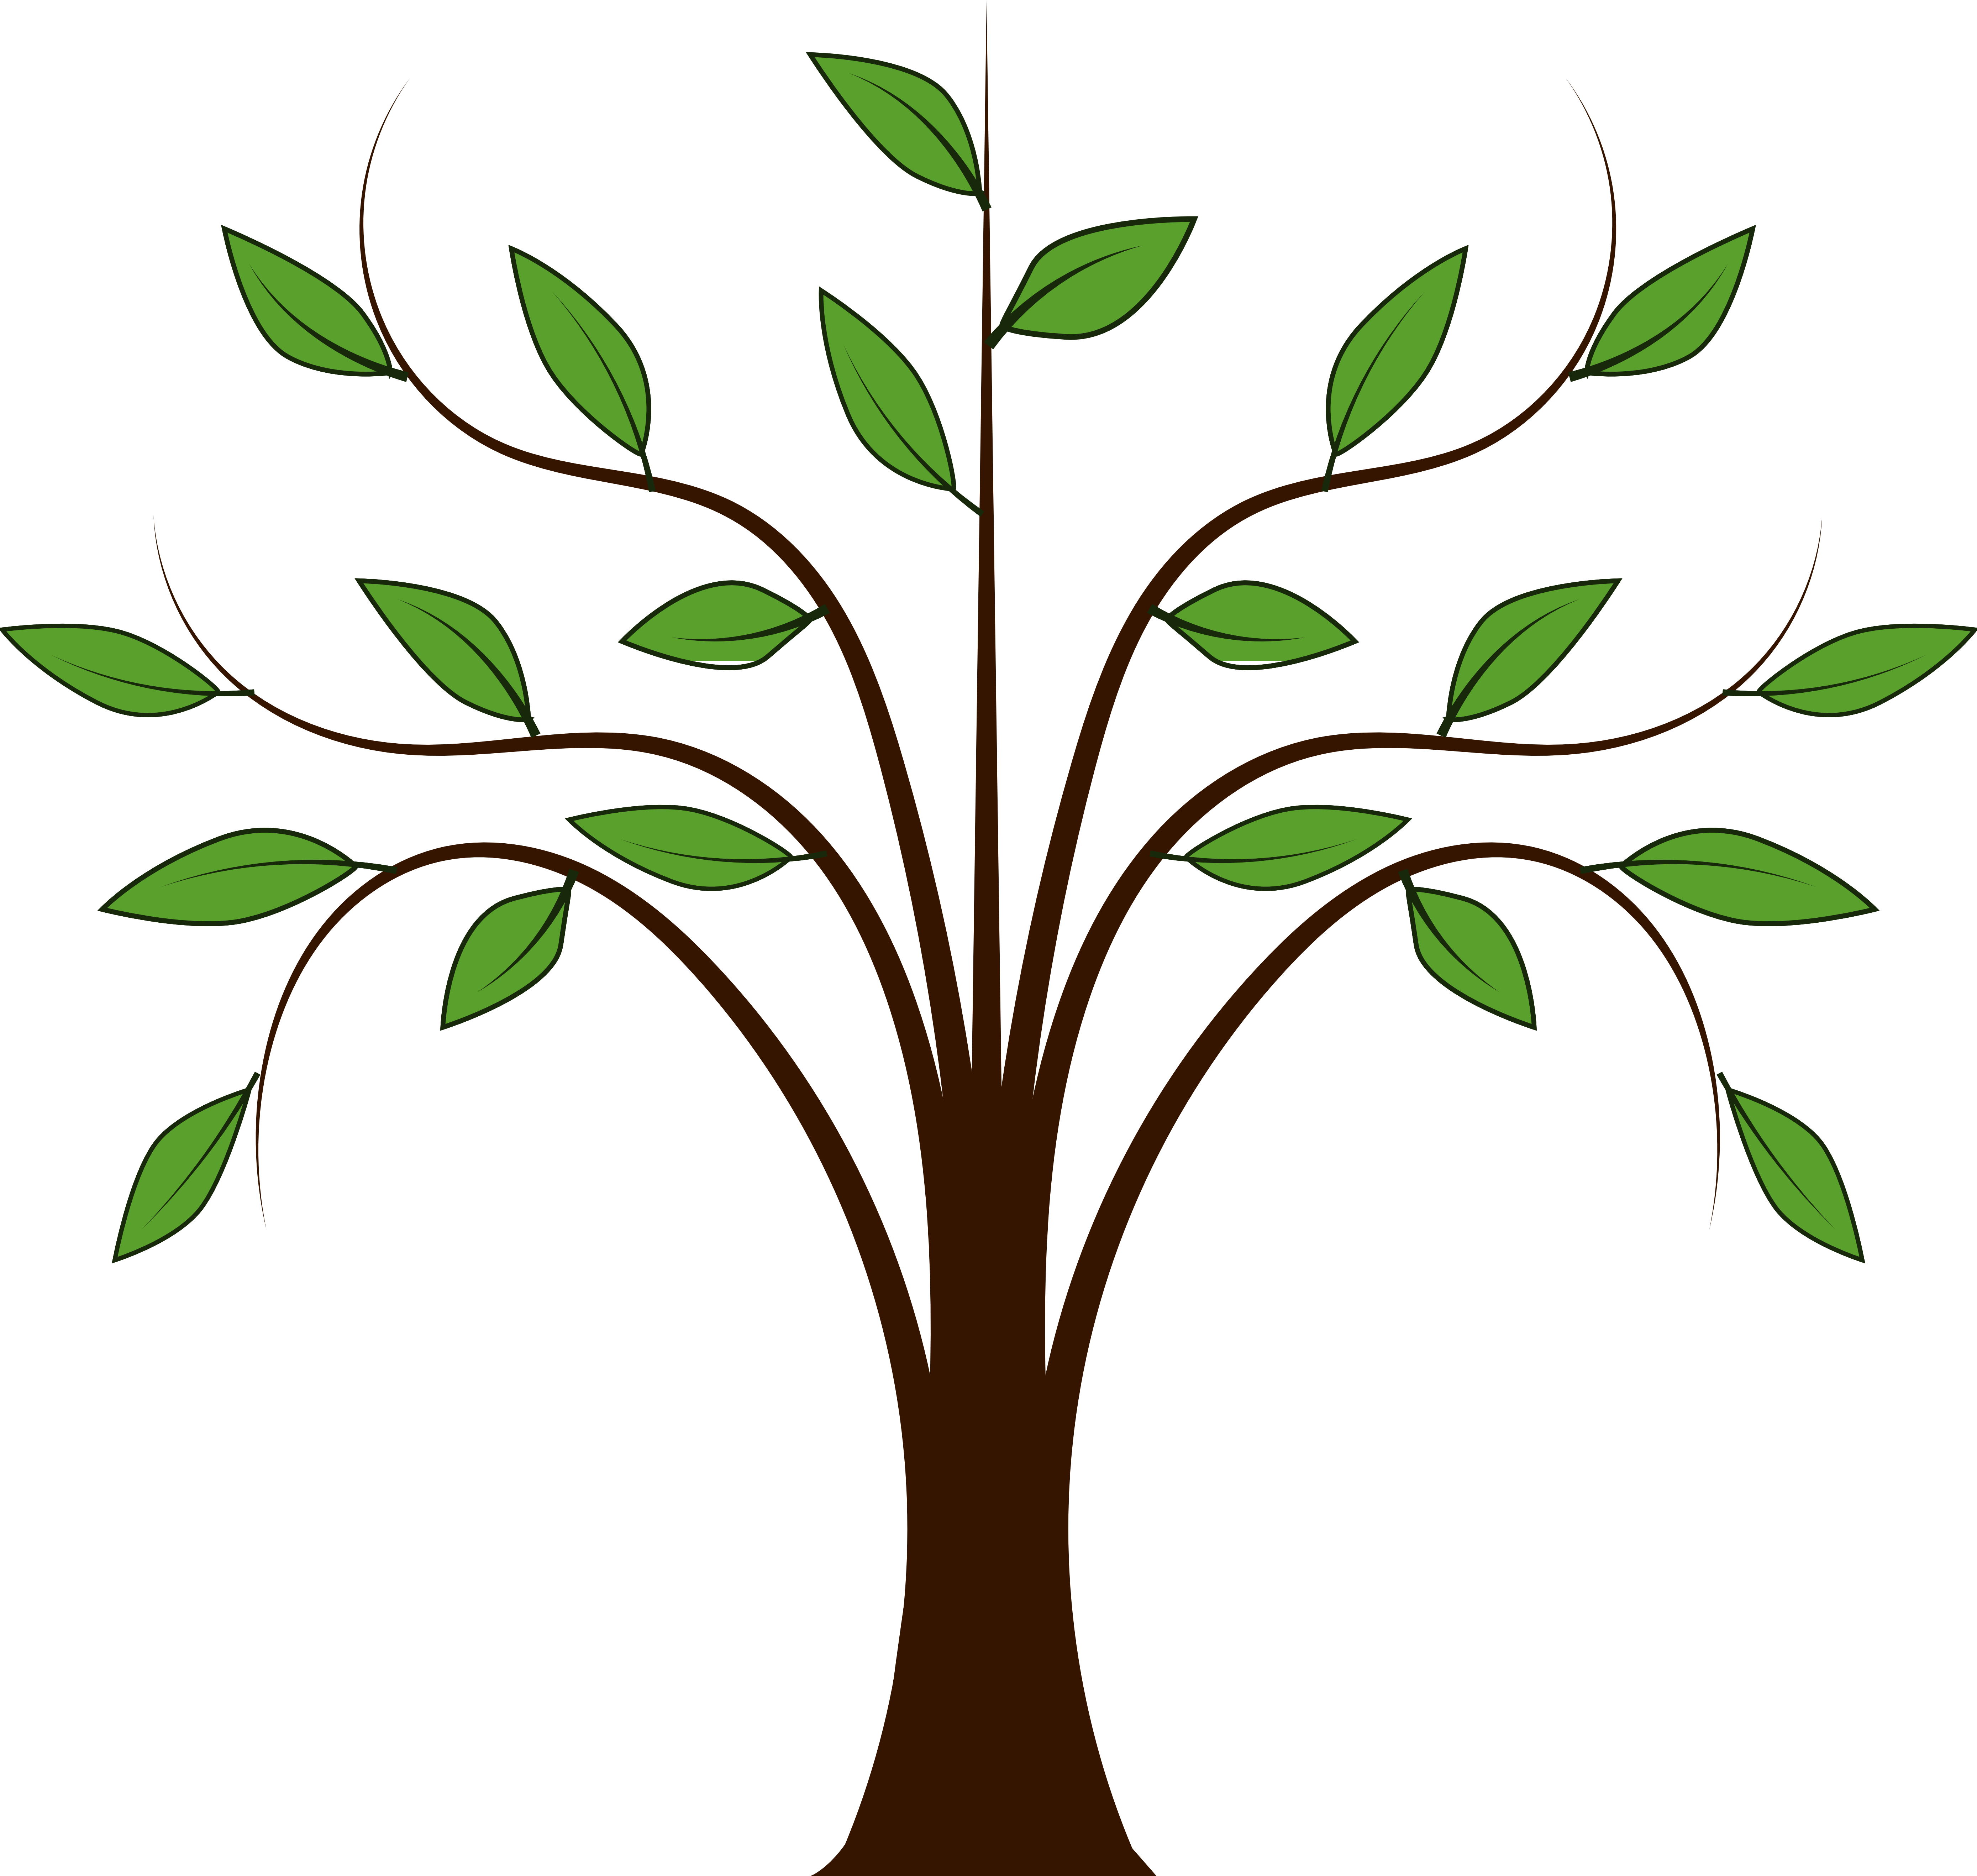 free family tree clipart at getdrawings com free for personal use rh getdrawings com tree clip art png tree clipart no background